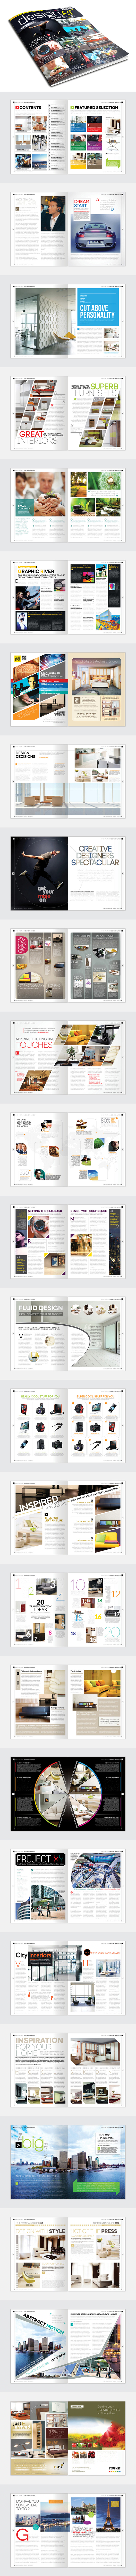 Magazine Template - InDesign 56 Page Layout V2 on Behance ...